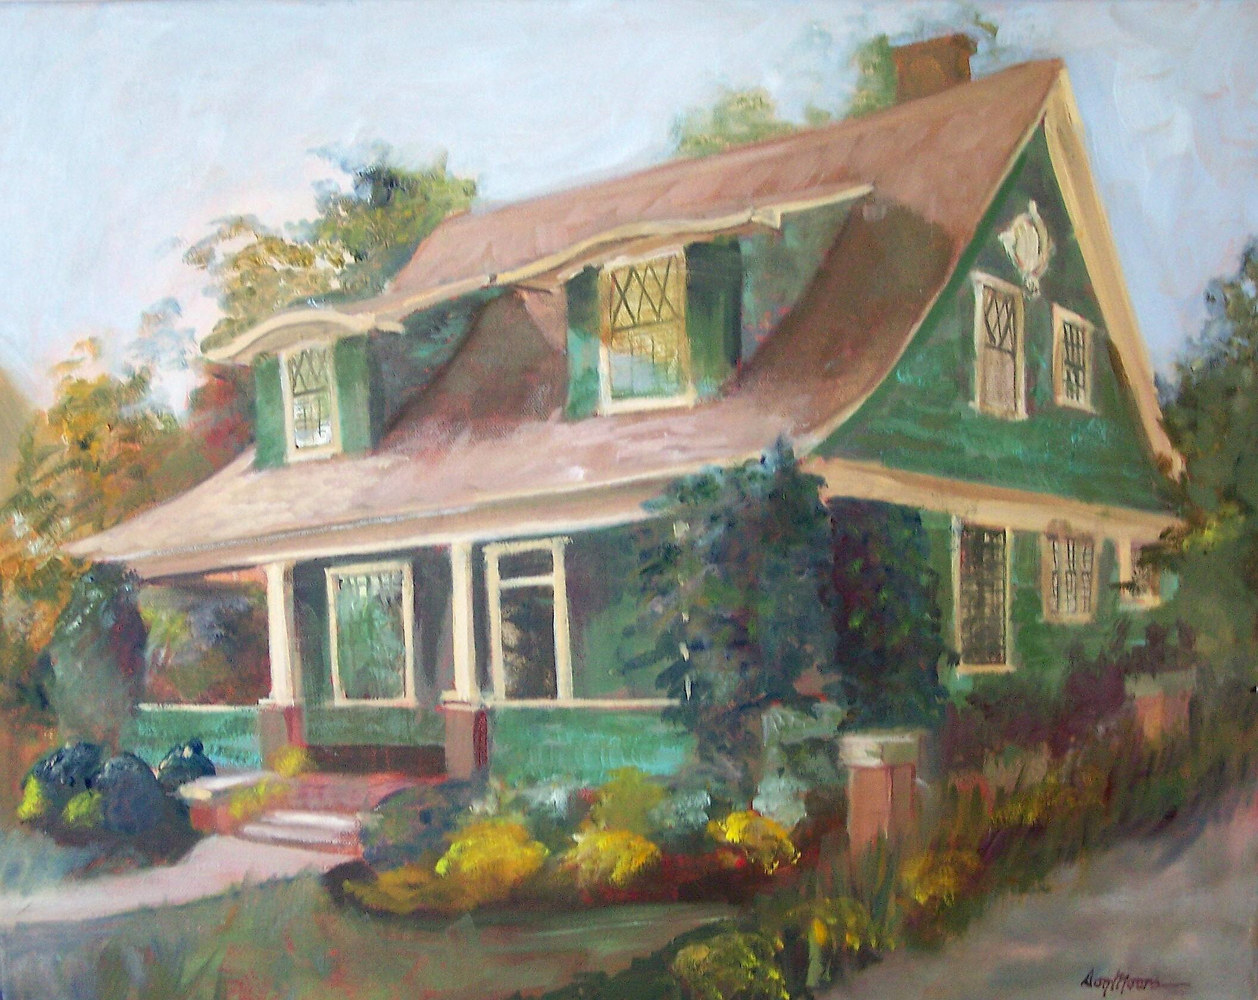 Bungalow - 16 x 20 by Don Moore